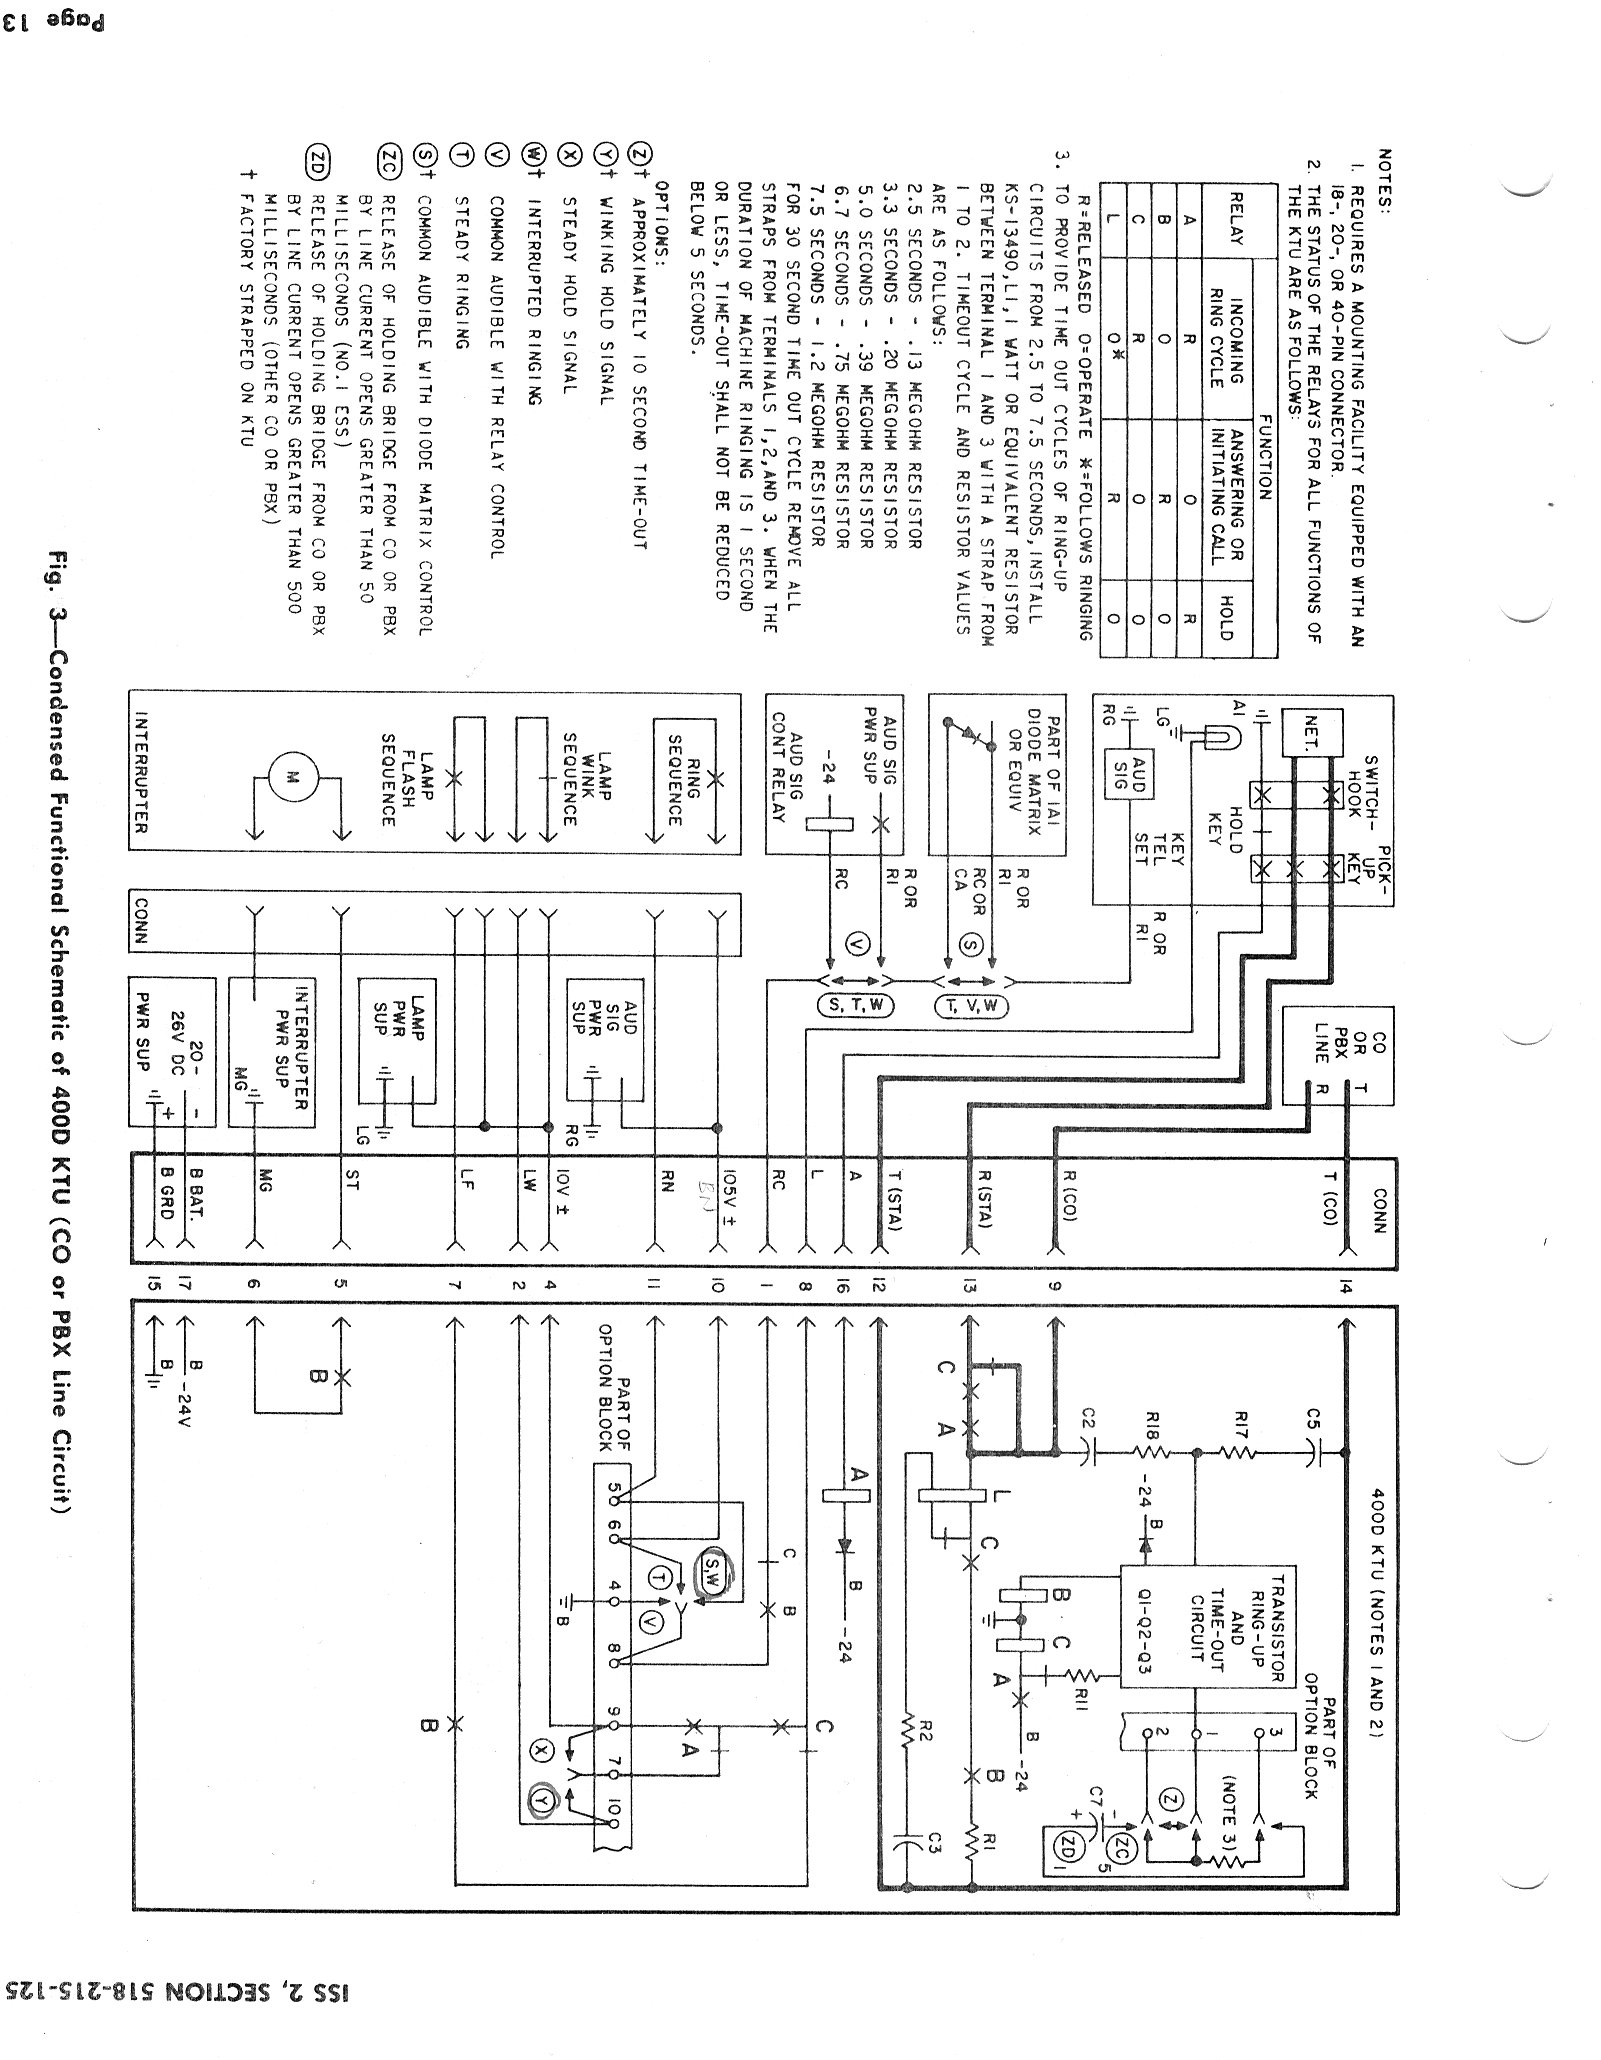 400d 1a2 key system explanation pbx system wiring diagram at aneh.co